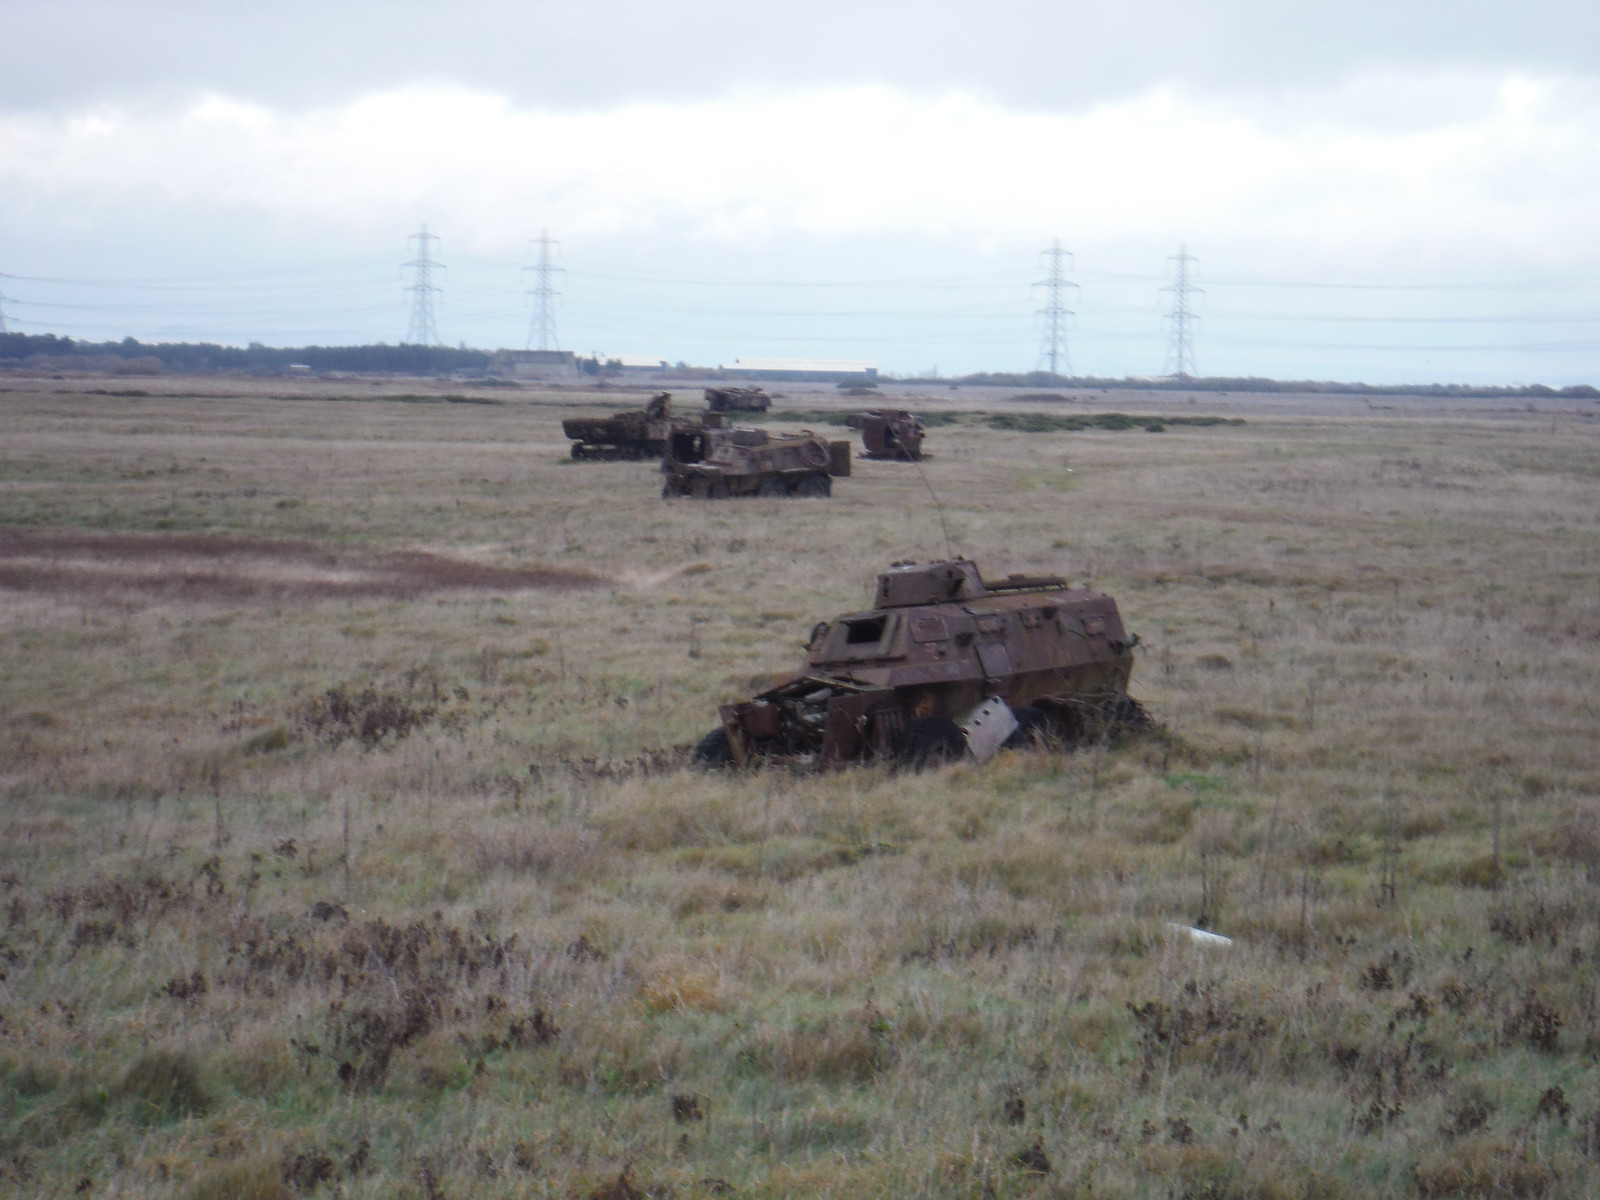 Target Tanks, Lydd Ranges SWC 154 - Rye to Dungeness and Lydd-on-Sea or Lydd or Circular